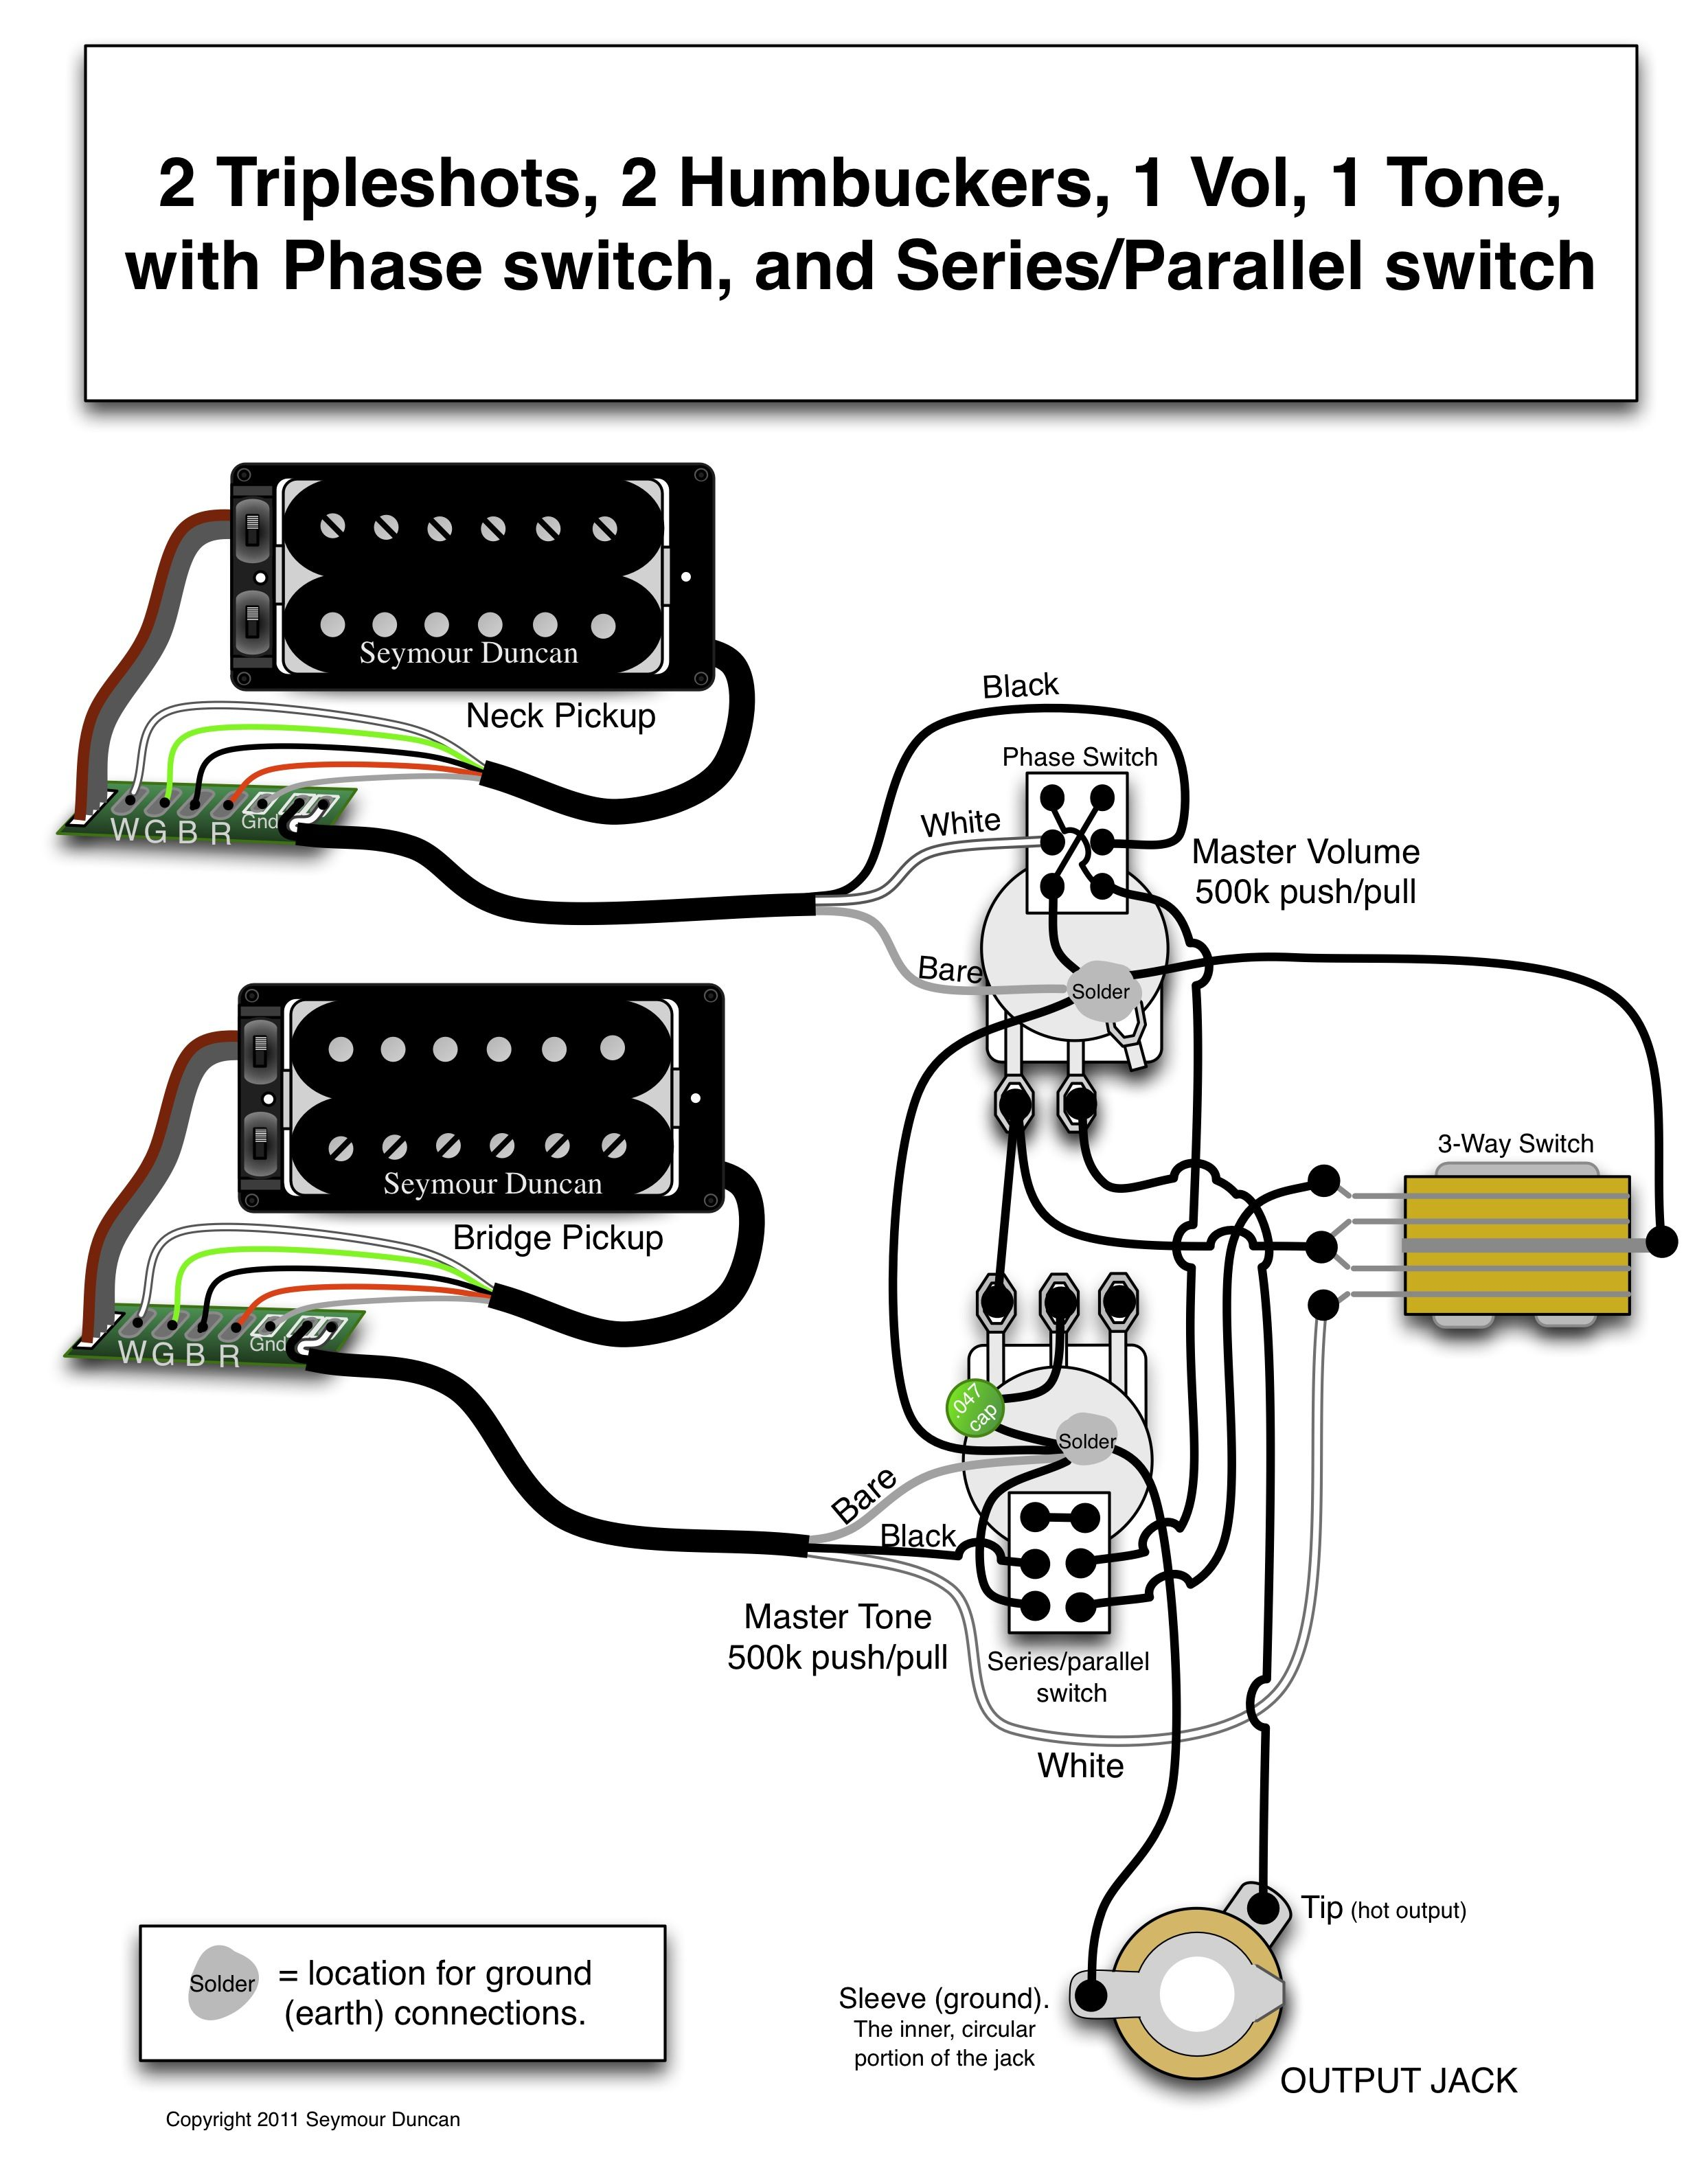 seymour duncan wiring diagram 2 triple shots 2 humbuckers 1 vol rh pinterest com